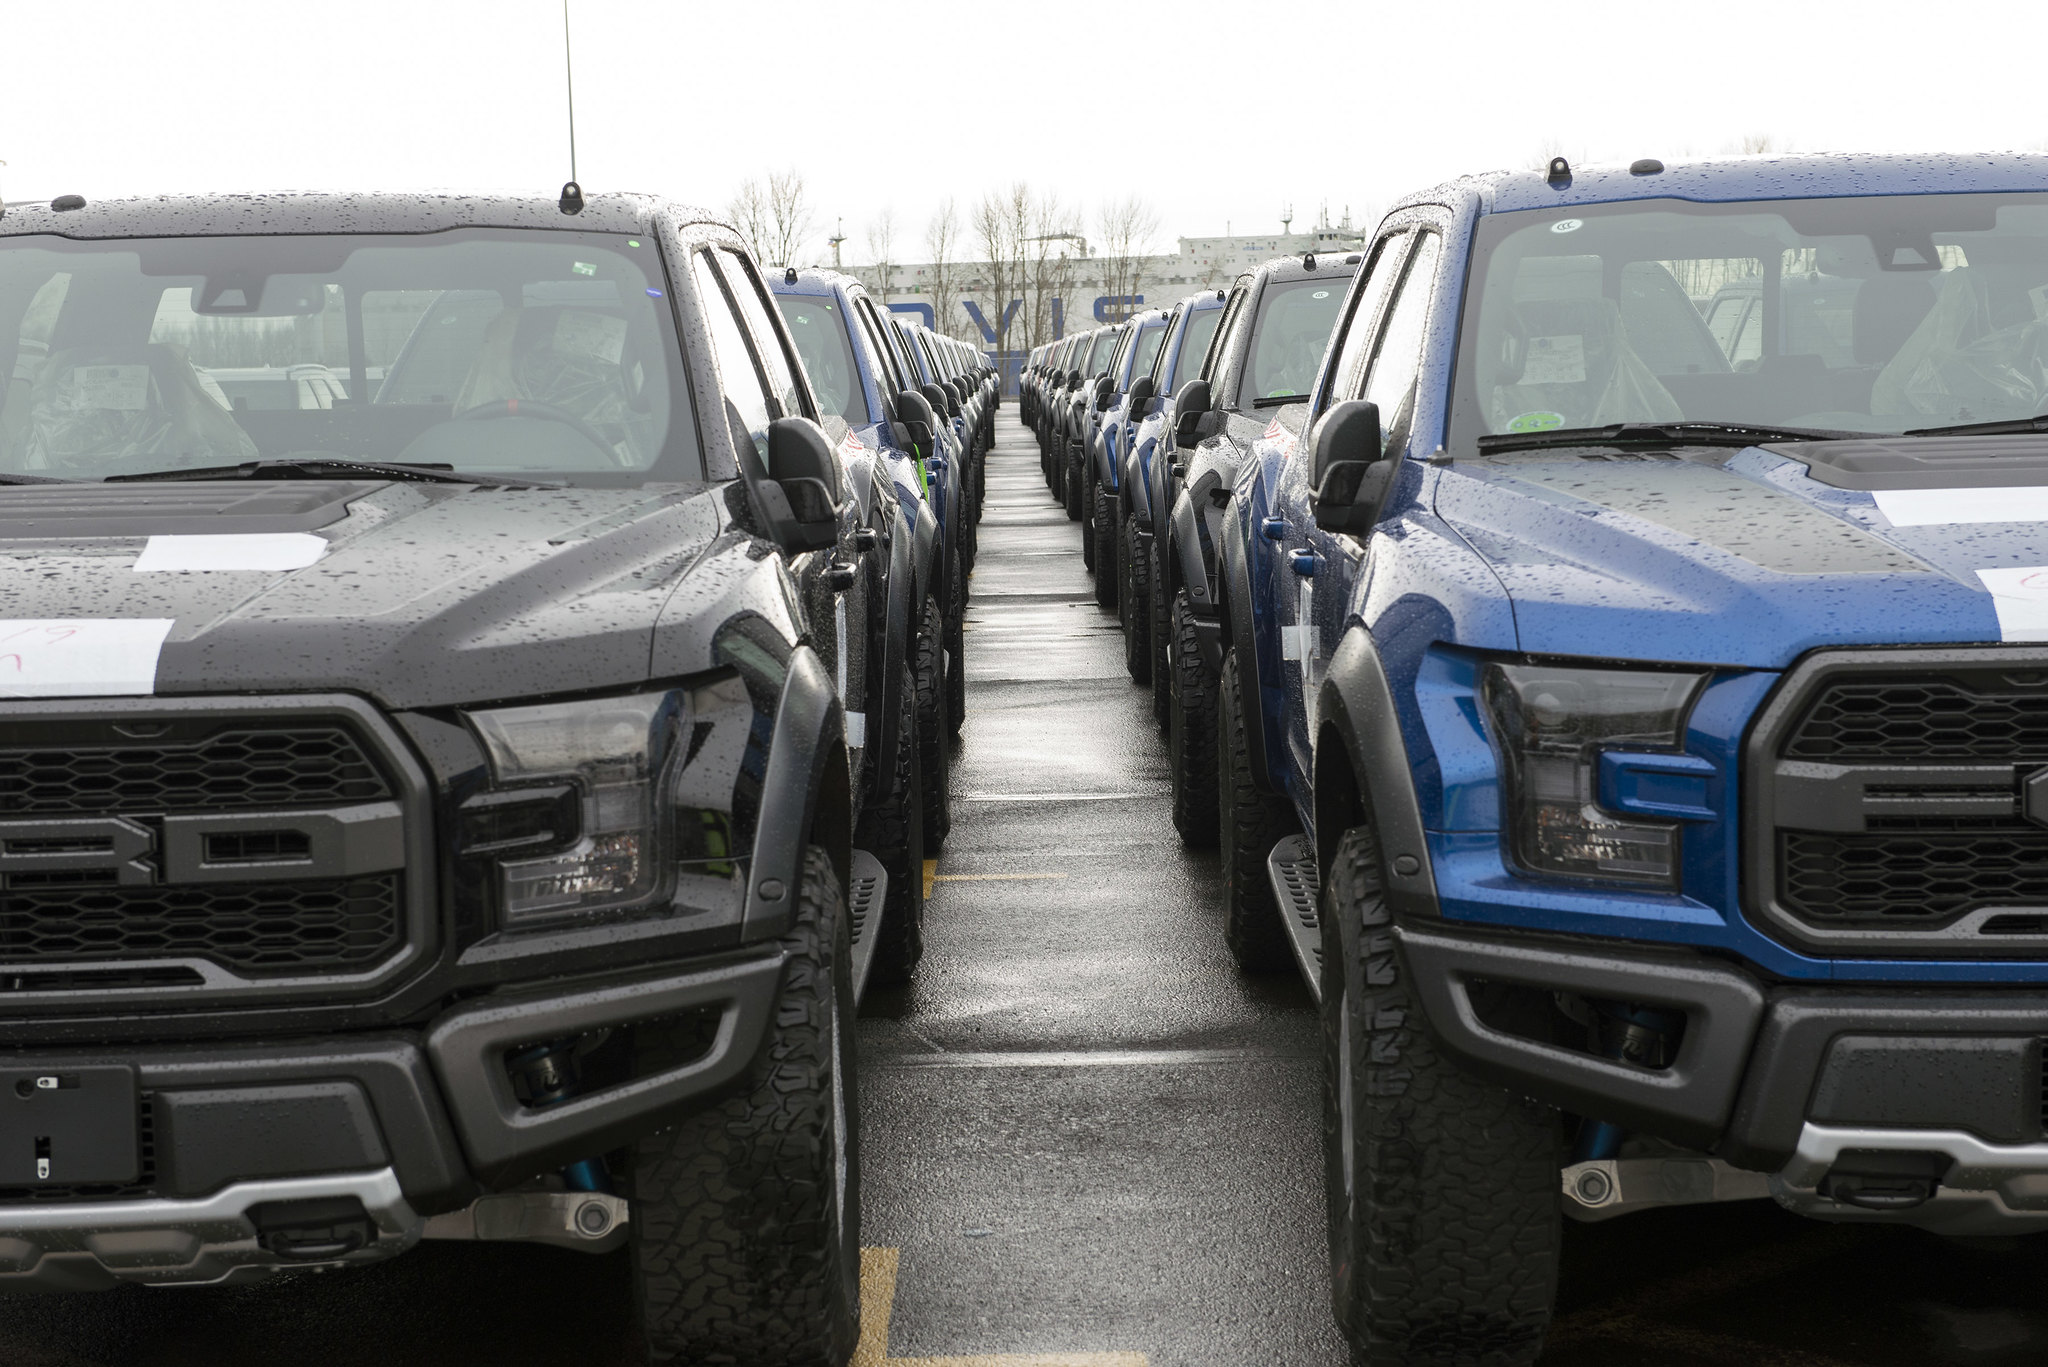 2017 Ford F-150 Raptor now on its way to customers in China